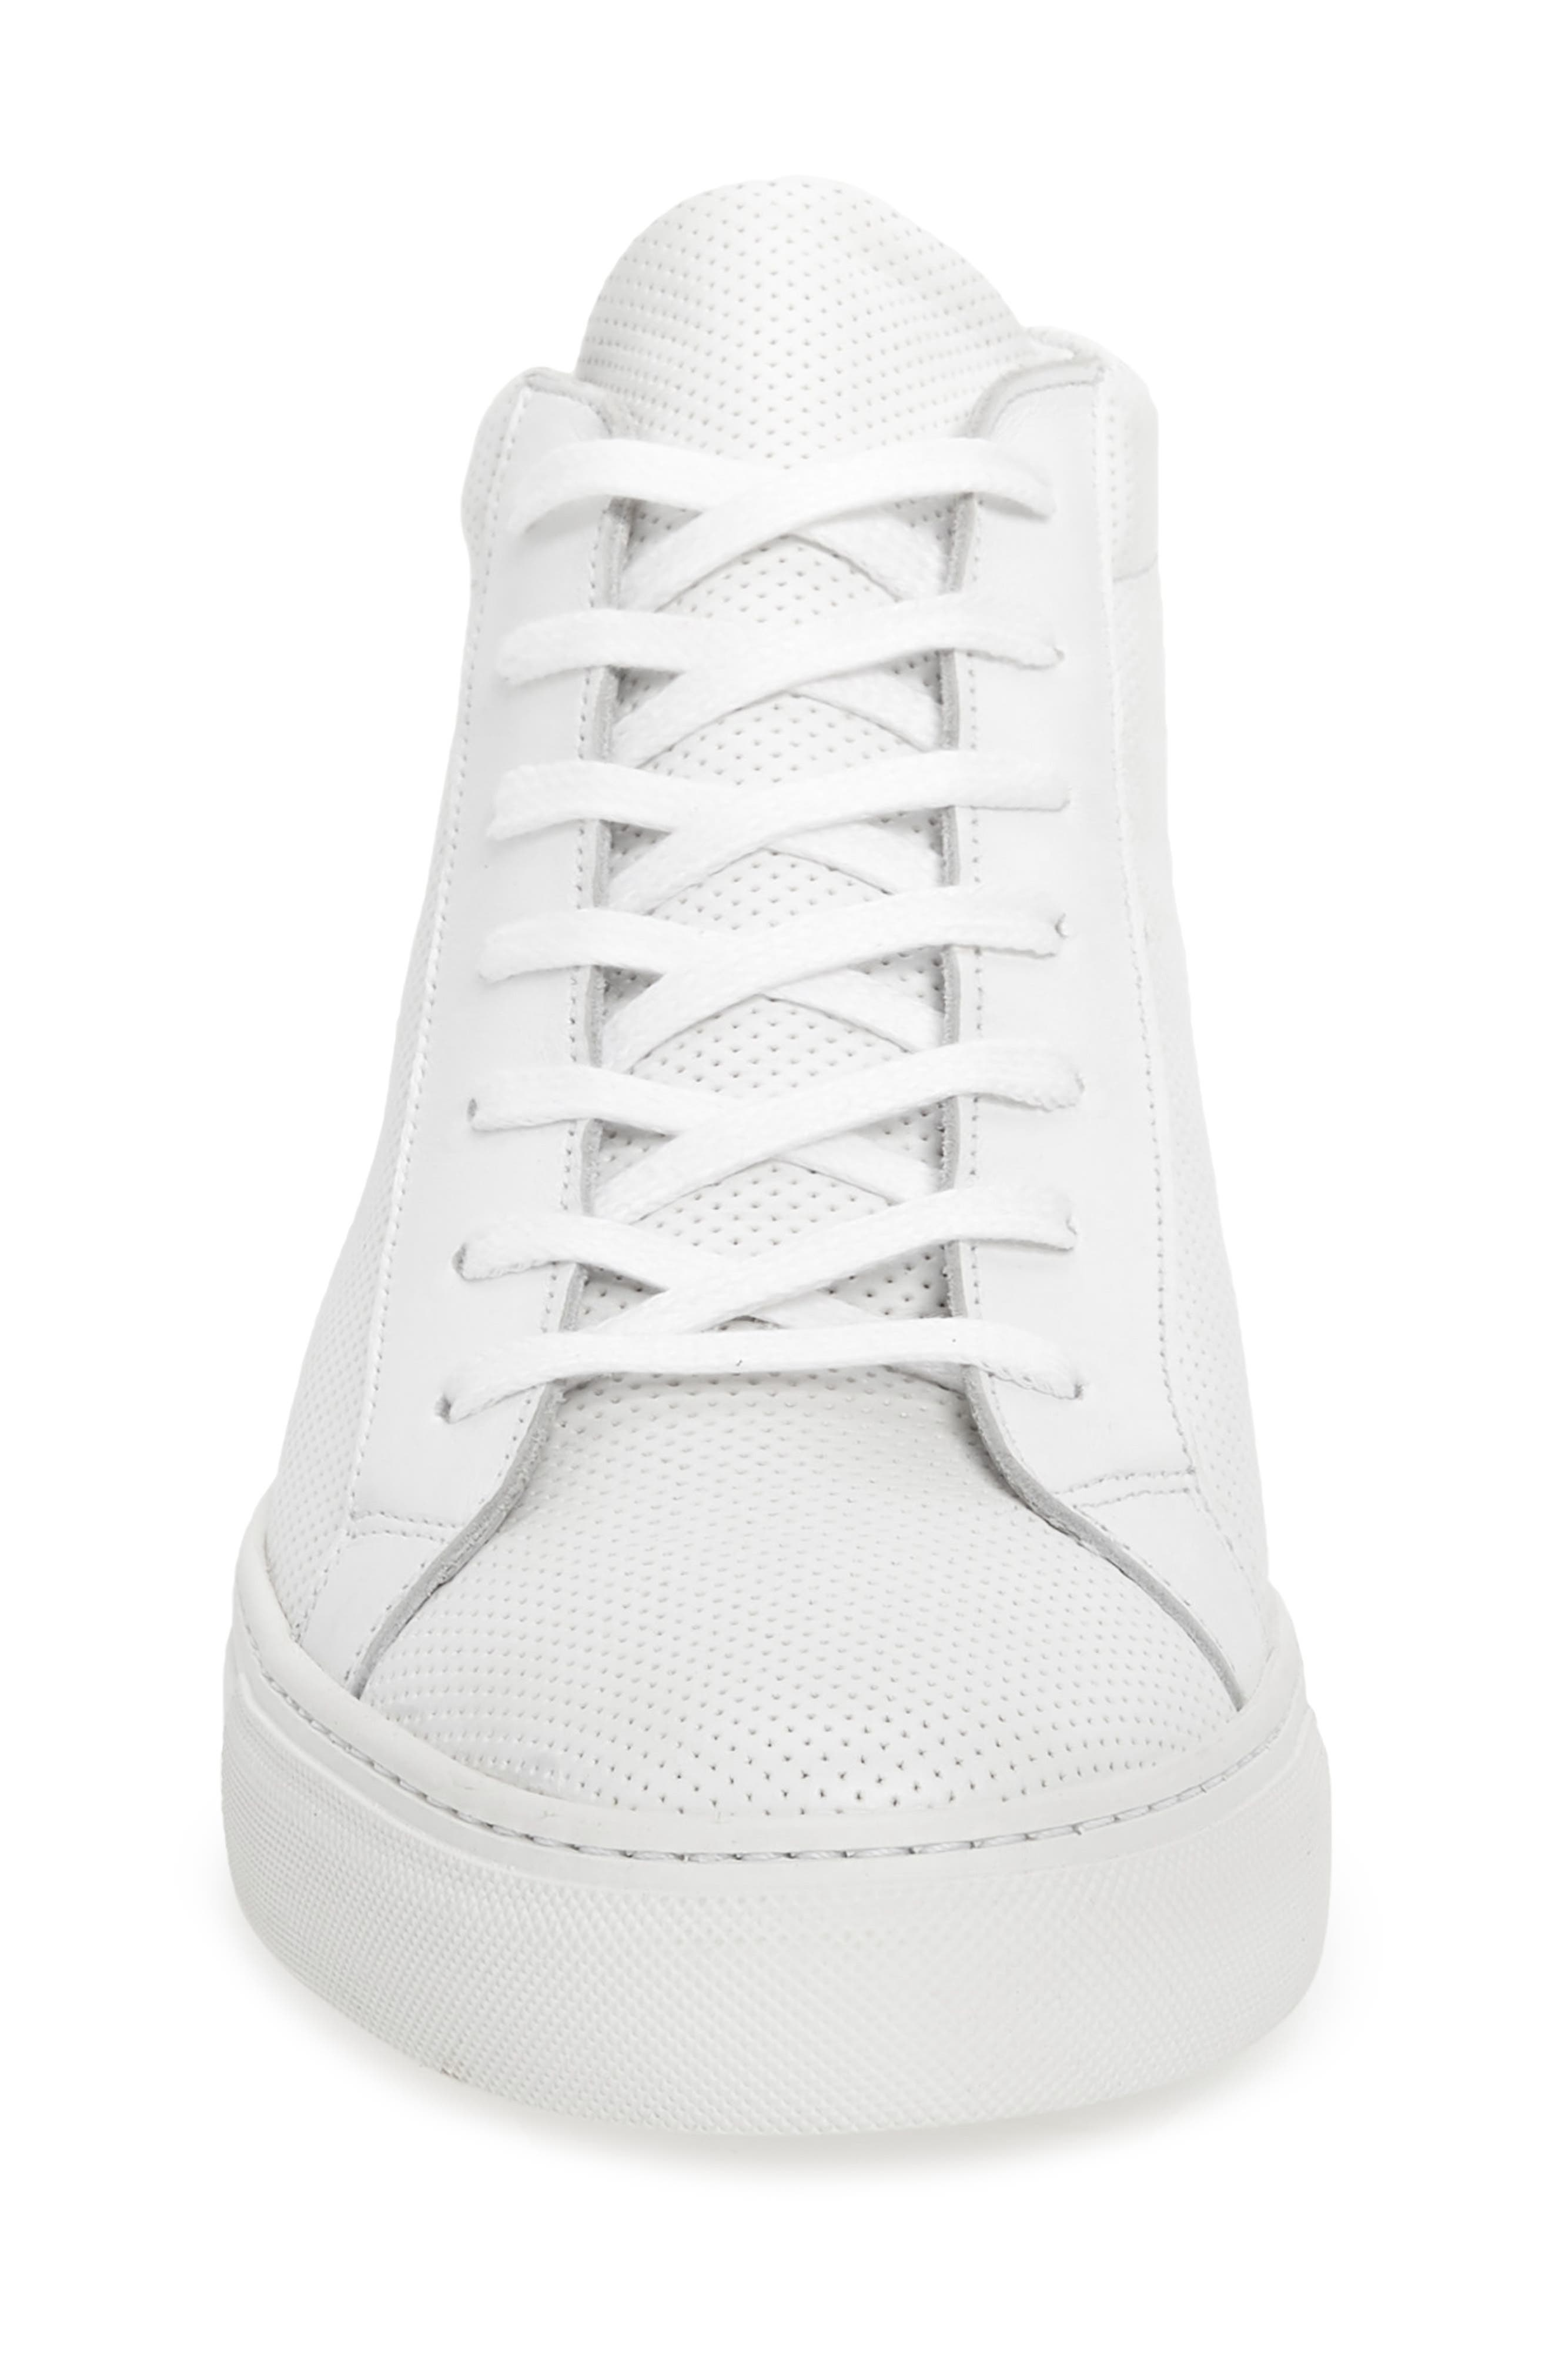 Deacon Mid Sneaker,                             Alternate thumbnail 4, color,                             WHITE PERFORATED LEATHER